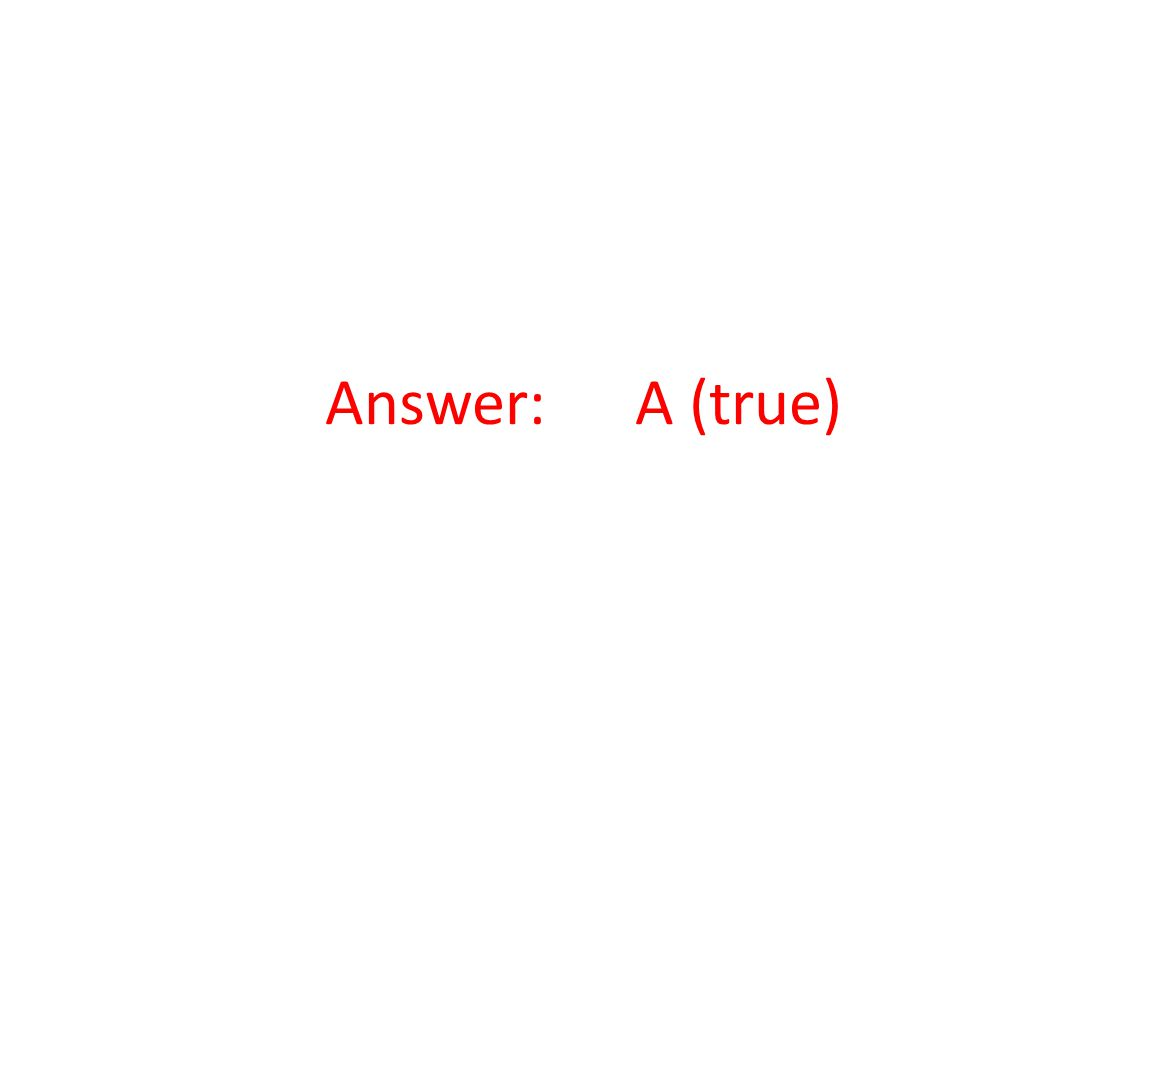 Answer: A (true)